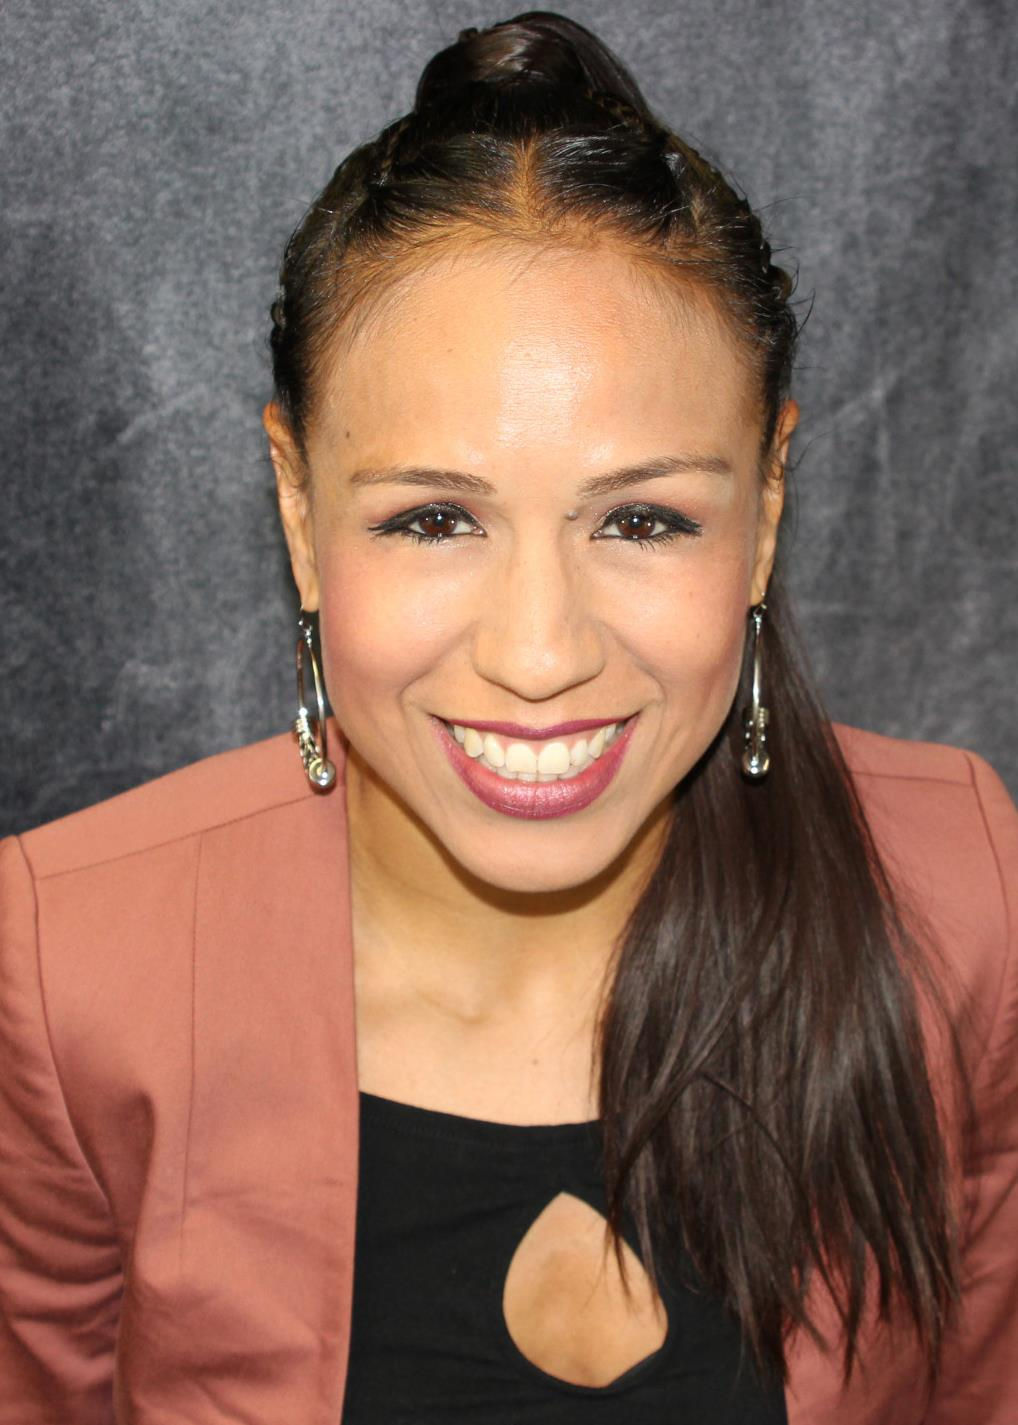 Gina Garcia, a faculty member in Pitt's school of education, will serve on the board of directors of the Association for the Study of Higher Education until 2021.